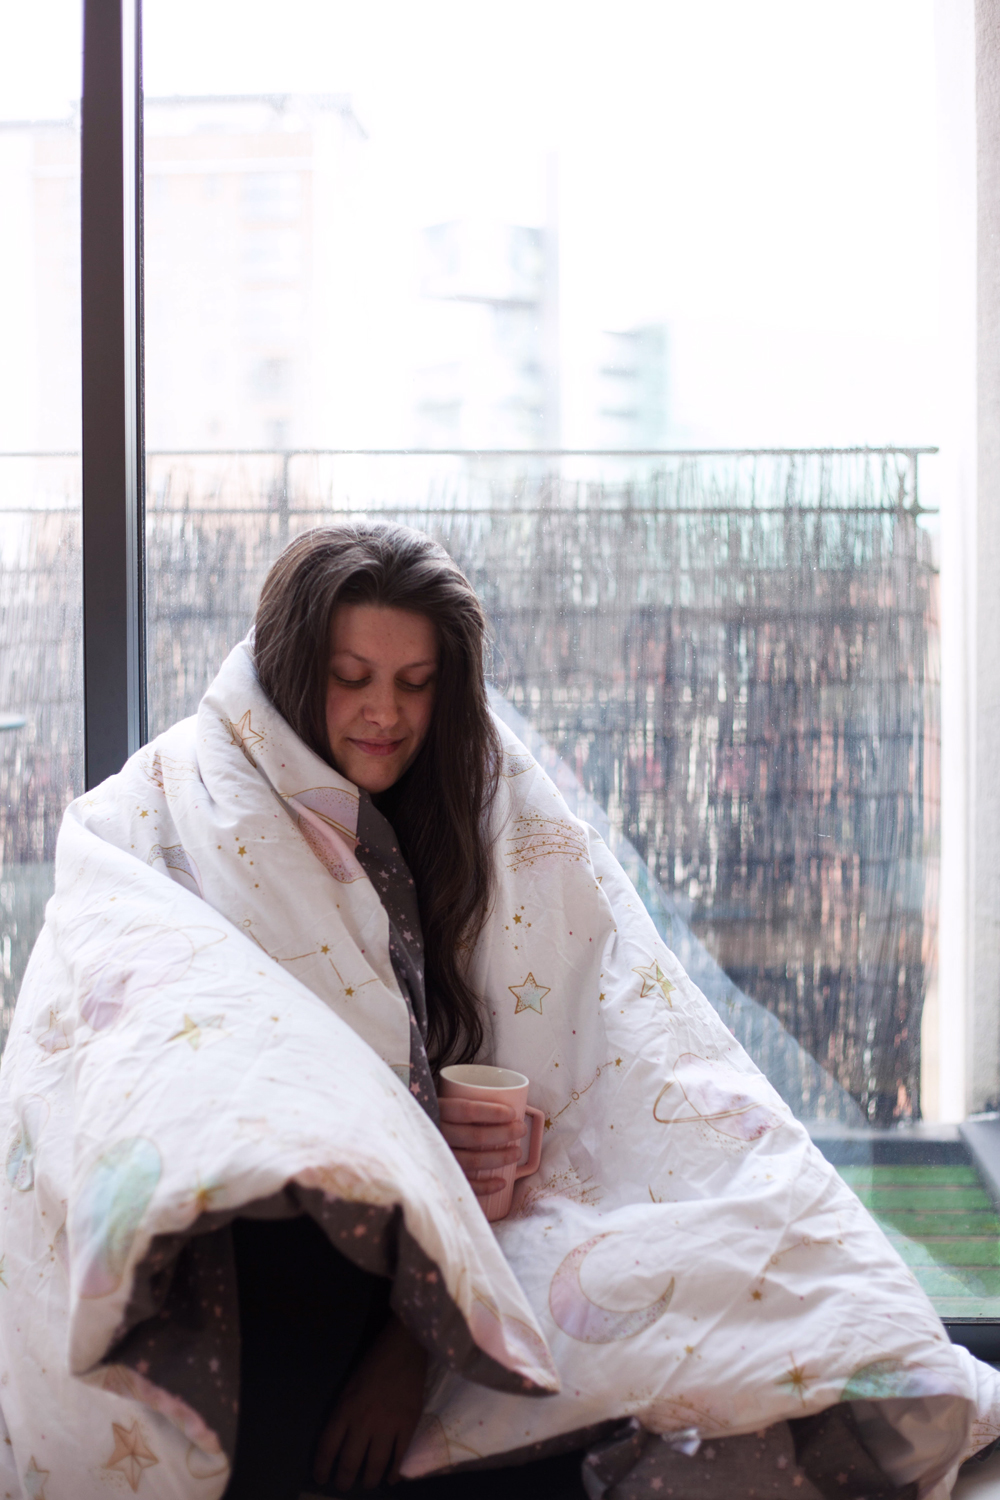 Image shows a sleepy woman (Jess Wilby) wrapped in her duvet in front of a city backdrop, with a cup of tea.